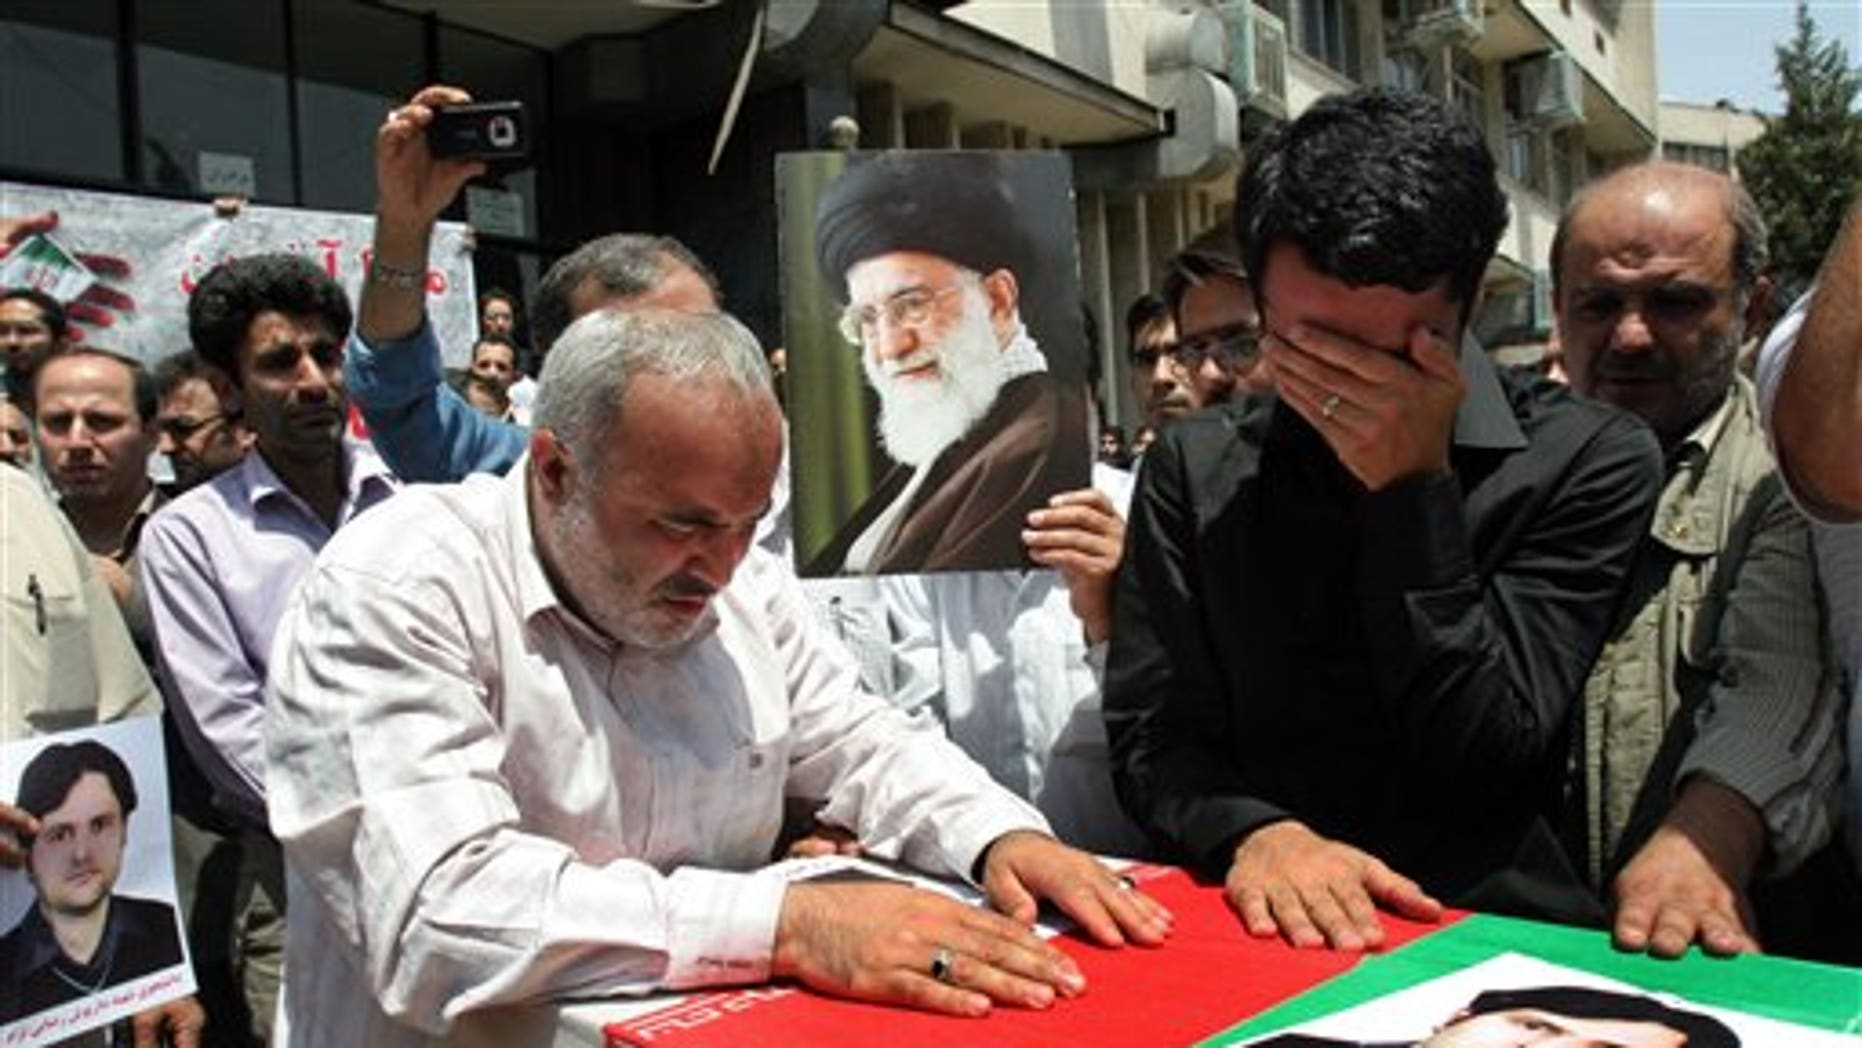 July 24: Relatives and friends mourn over the coffin of Darioush Rezaeinejad, shown in the picture on the coffin, in a funeral ceremony in Tehran, Iran, who was killed in a deadly shooting on Saturday.